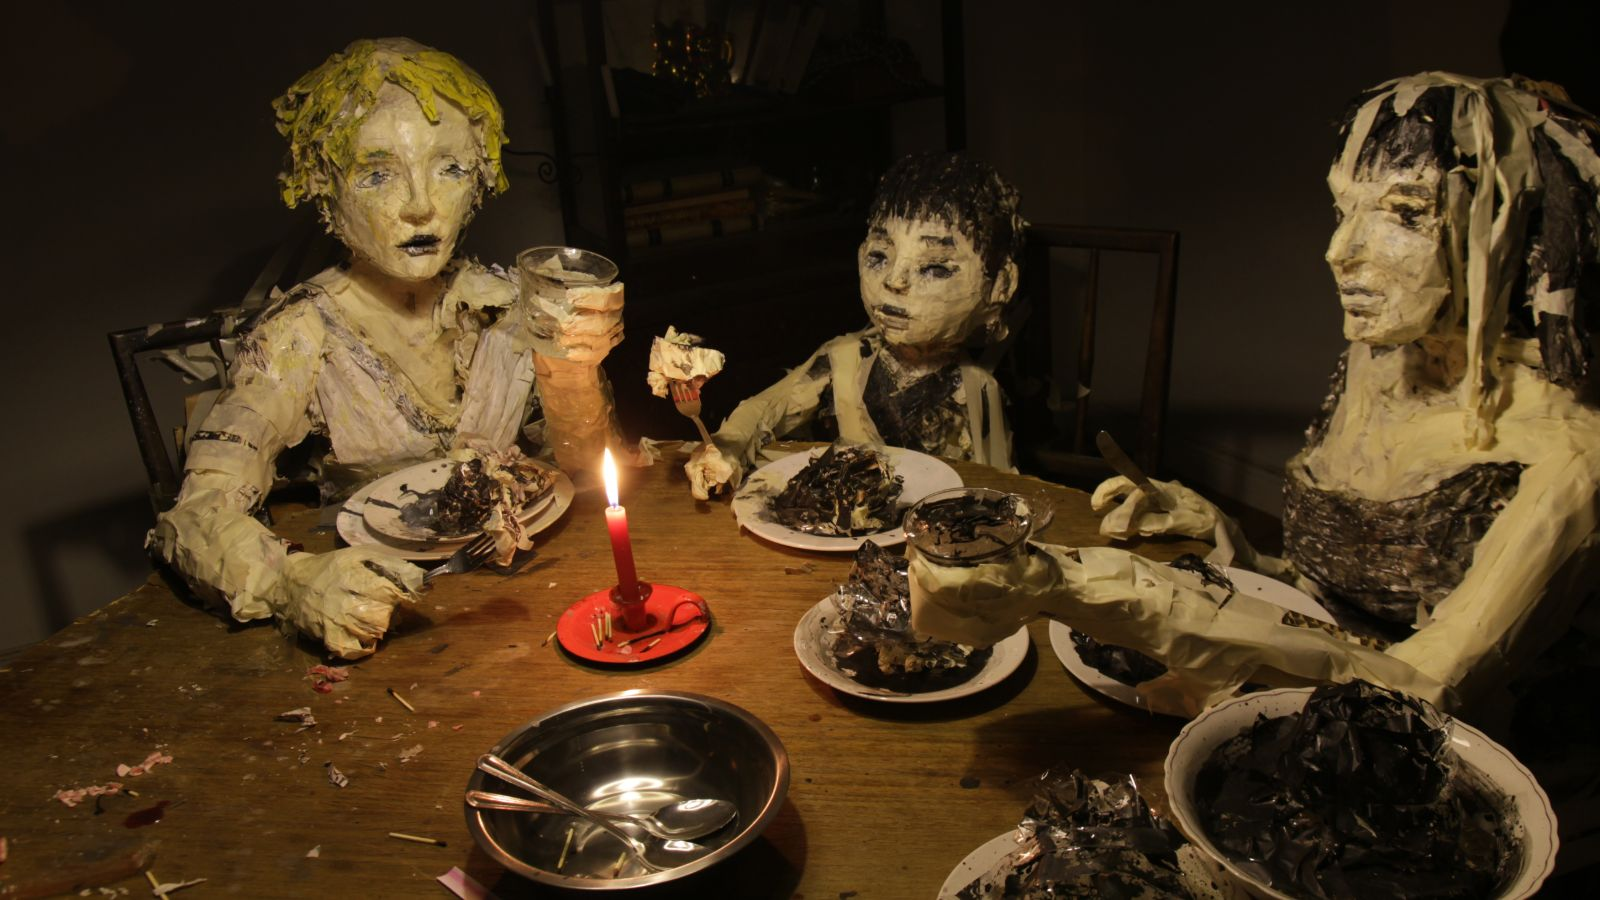 Watch the Creepy Trailer For Chilean Stop-Motion Animated Film 'The Wolf House'